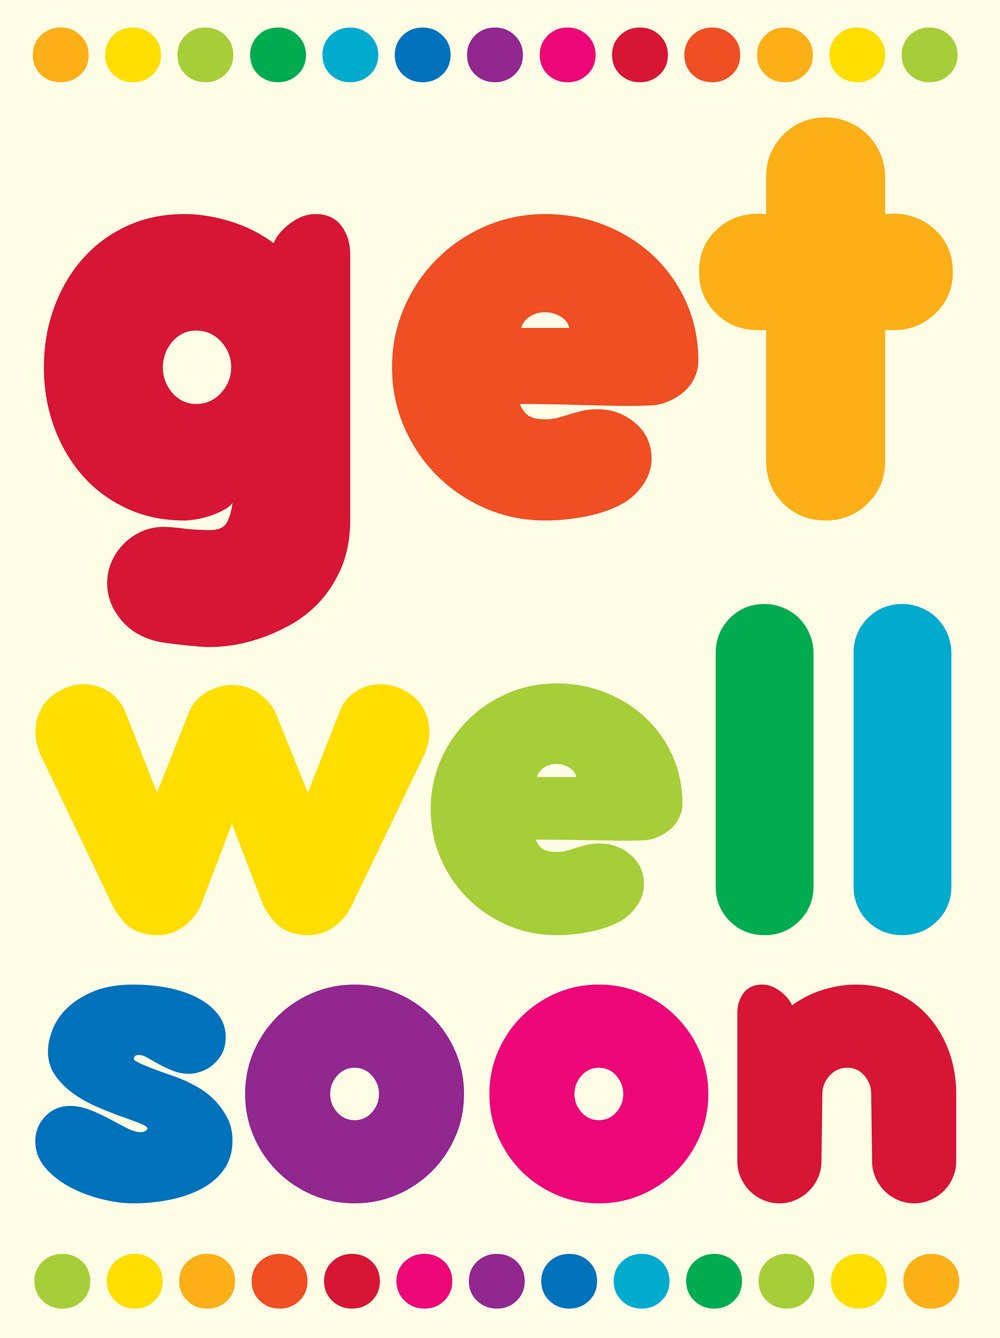 Get Well Soon Awesome Image - Feel Better Soon PNG - Get Well Soon PNG HD - Get Well Card PNG